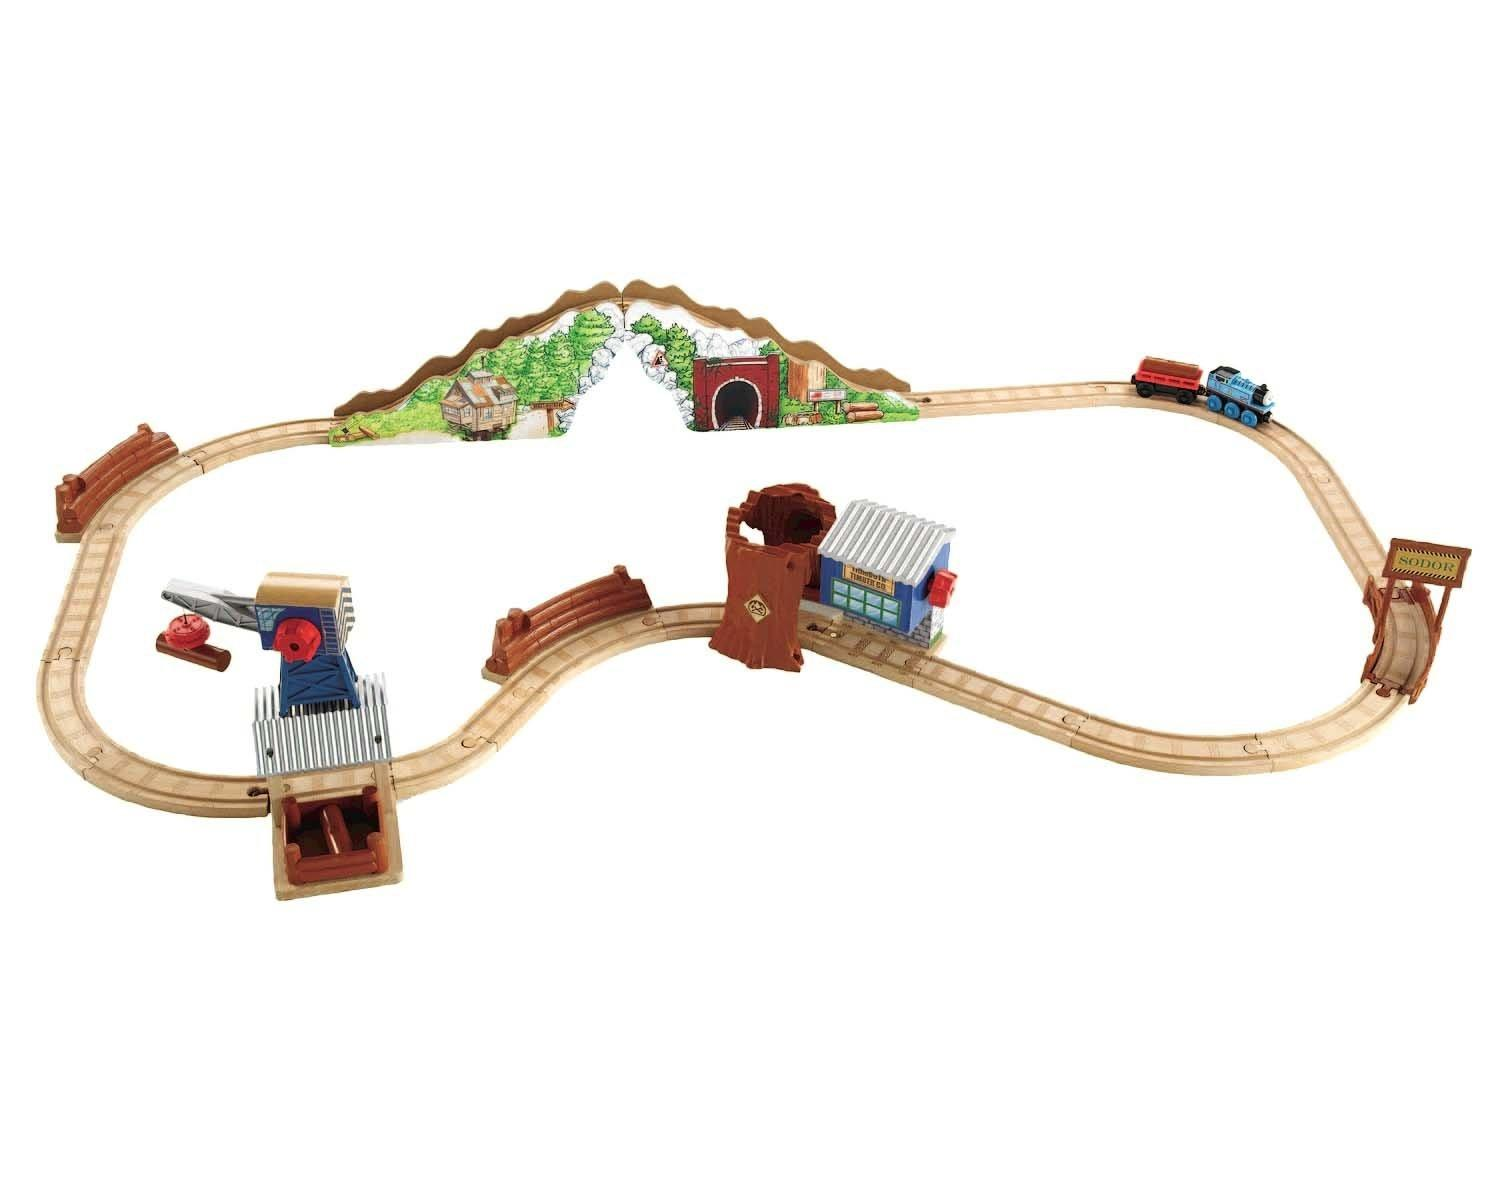 Thomas Wooden Railway - Tidmouth Timber Company Deluxe Figure 8 Set